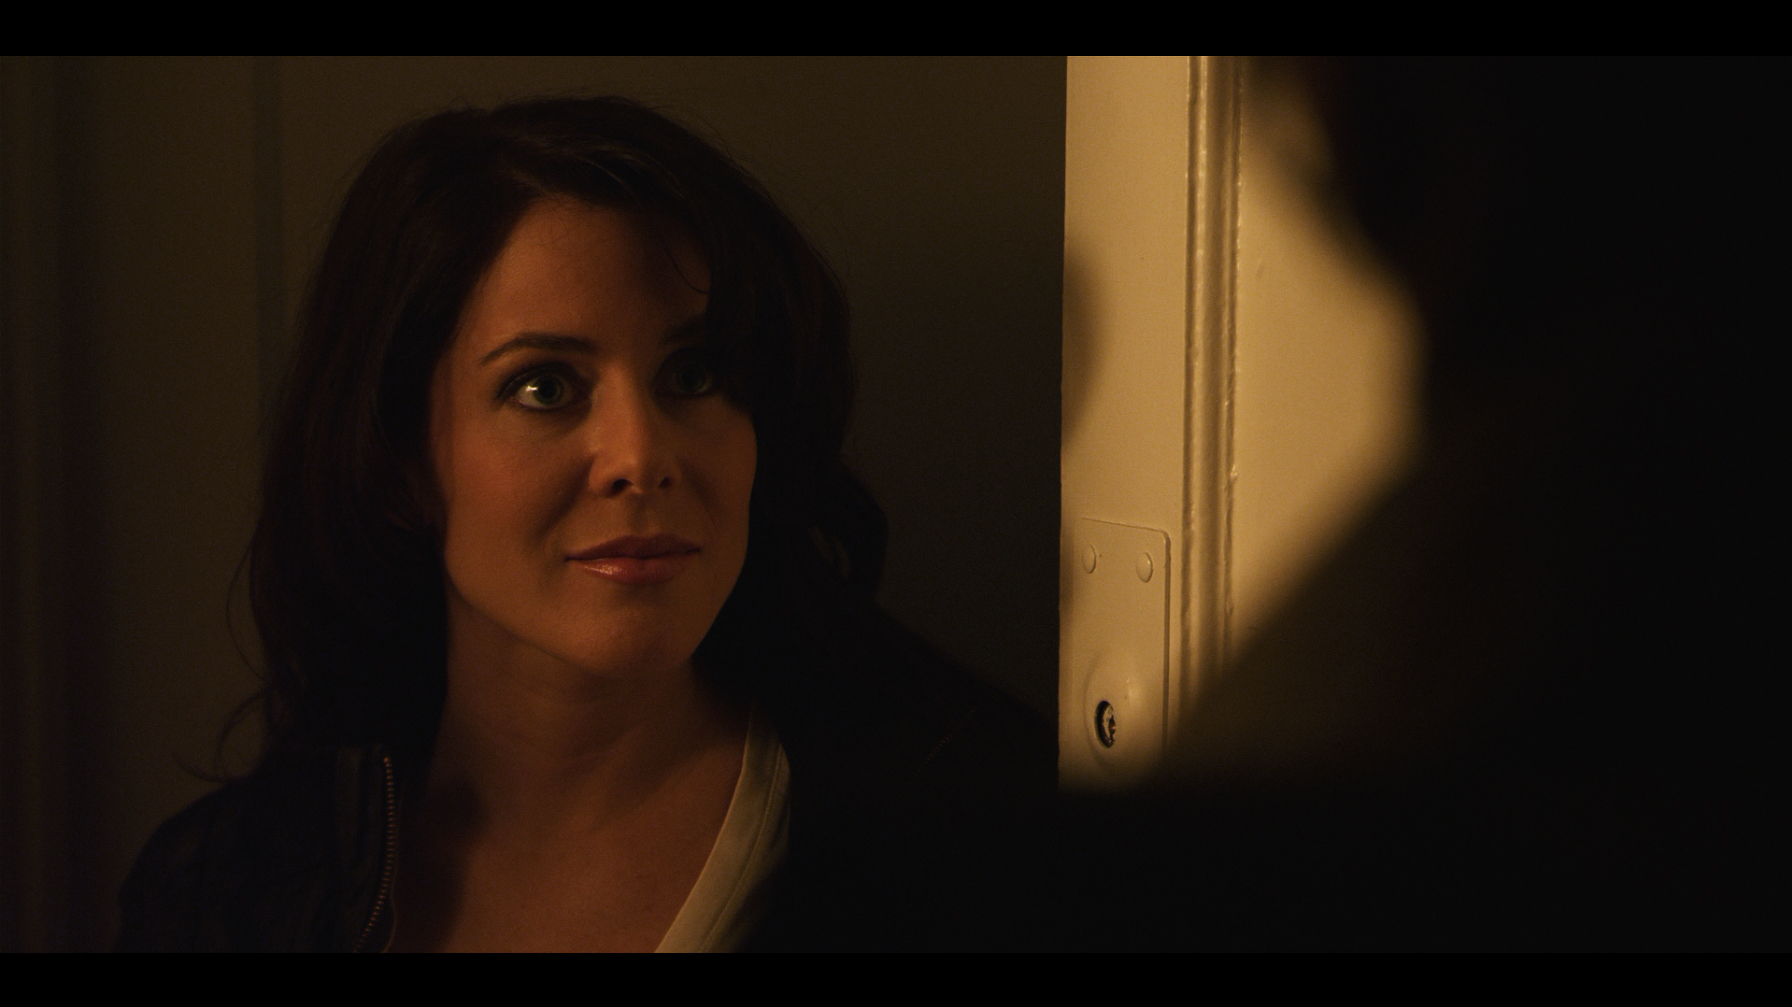 Sailor Stewart (Rebecca Mae Palmer) at the apartment. Still from the film.